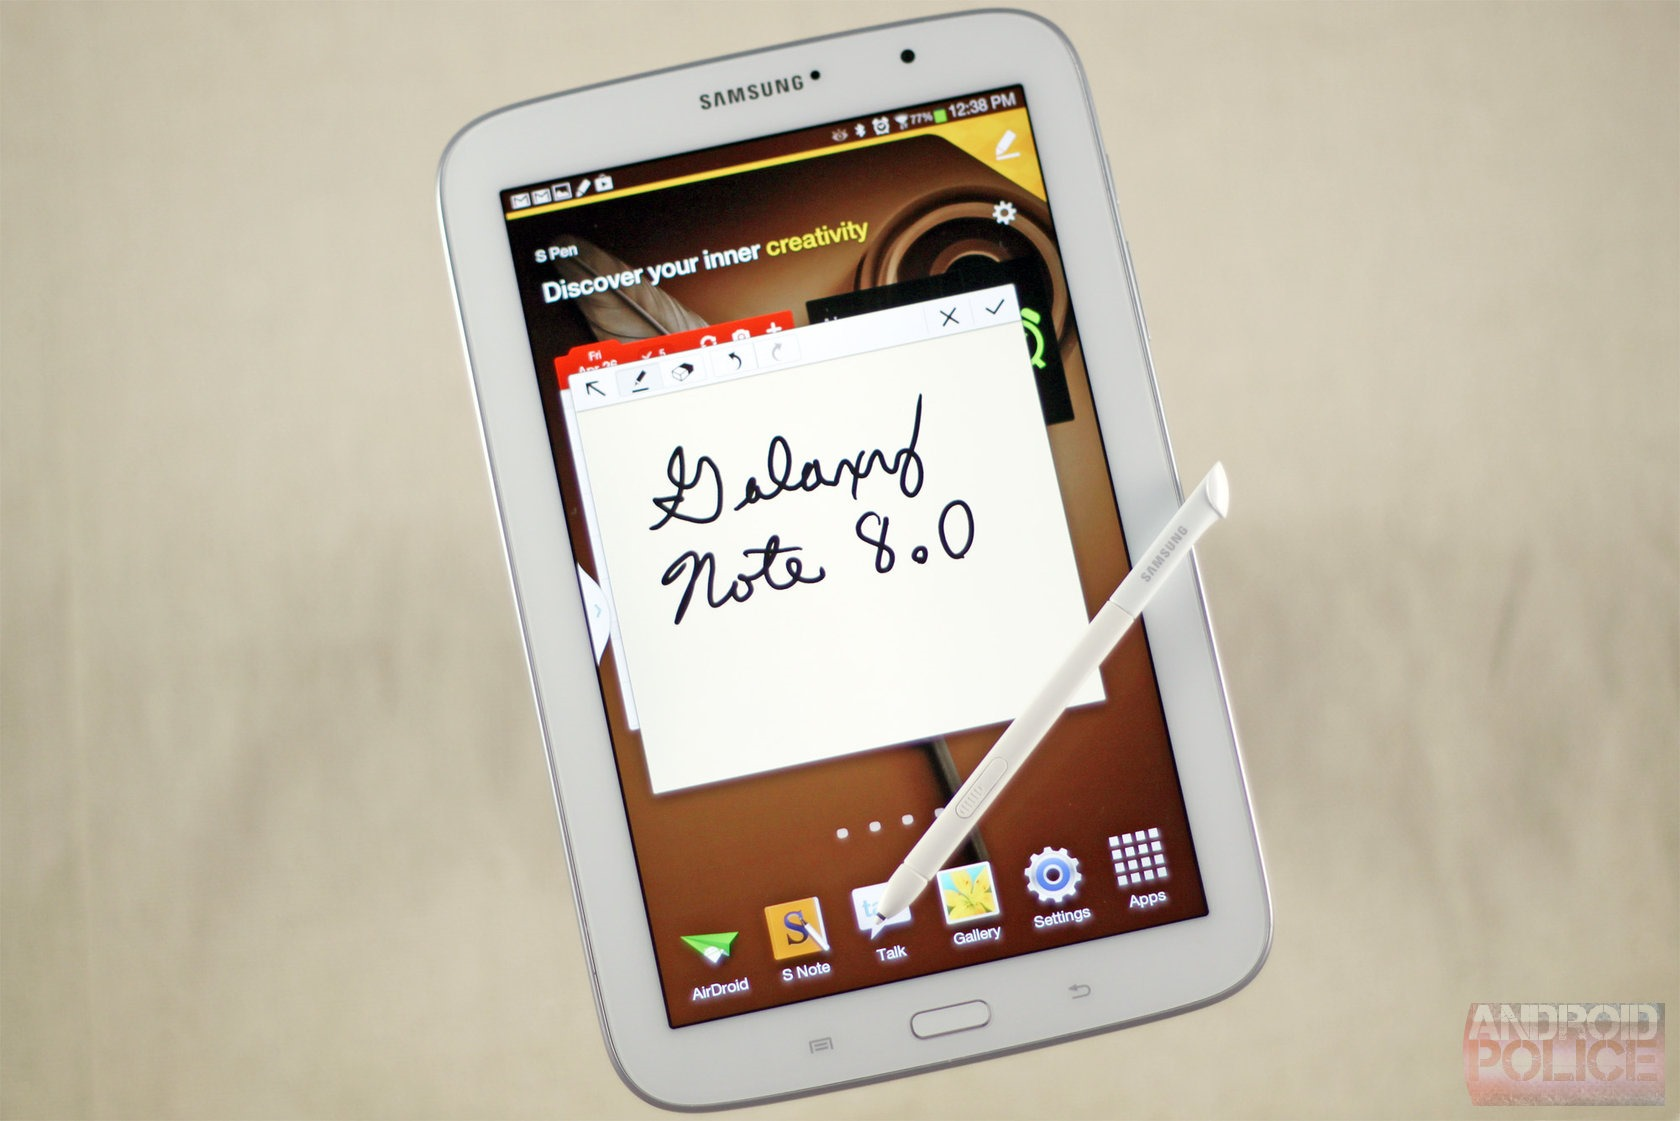 Note Tablet Tablet The Note 8.0